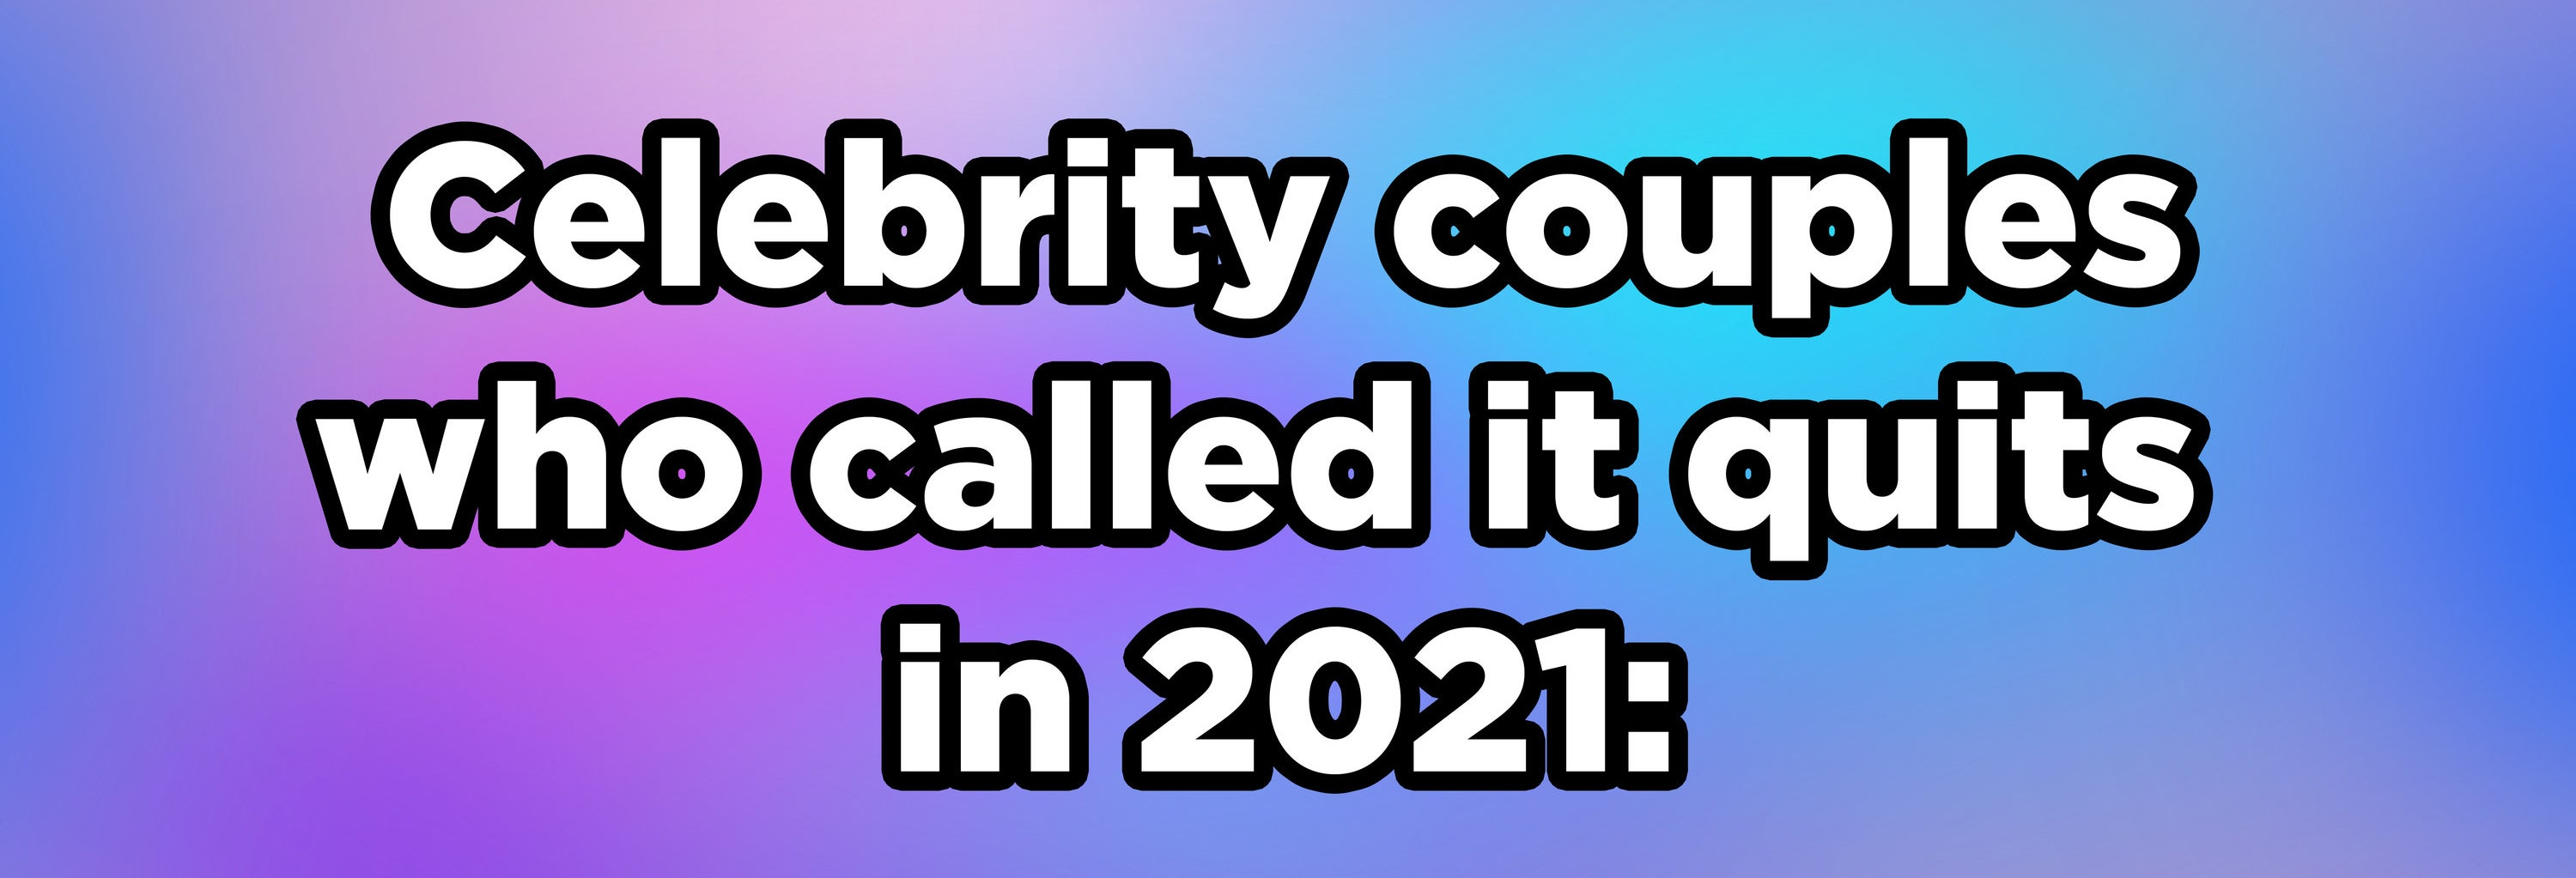 Celebrity couples who called it quits in 2021